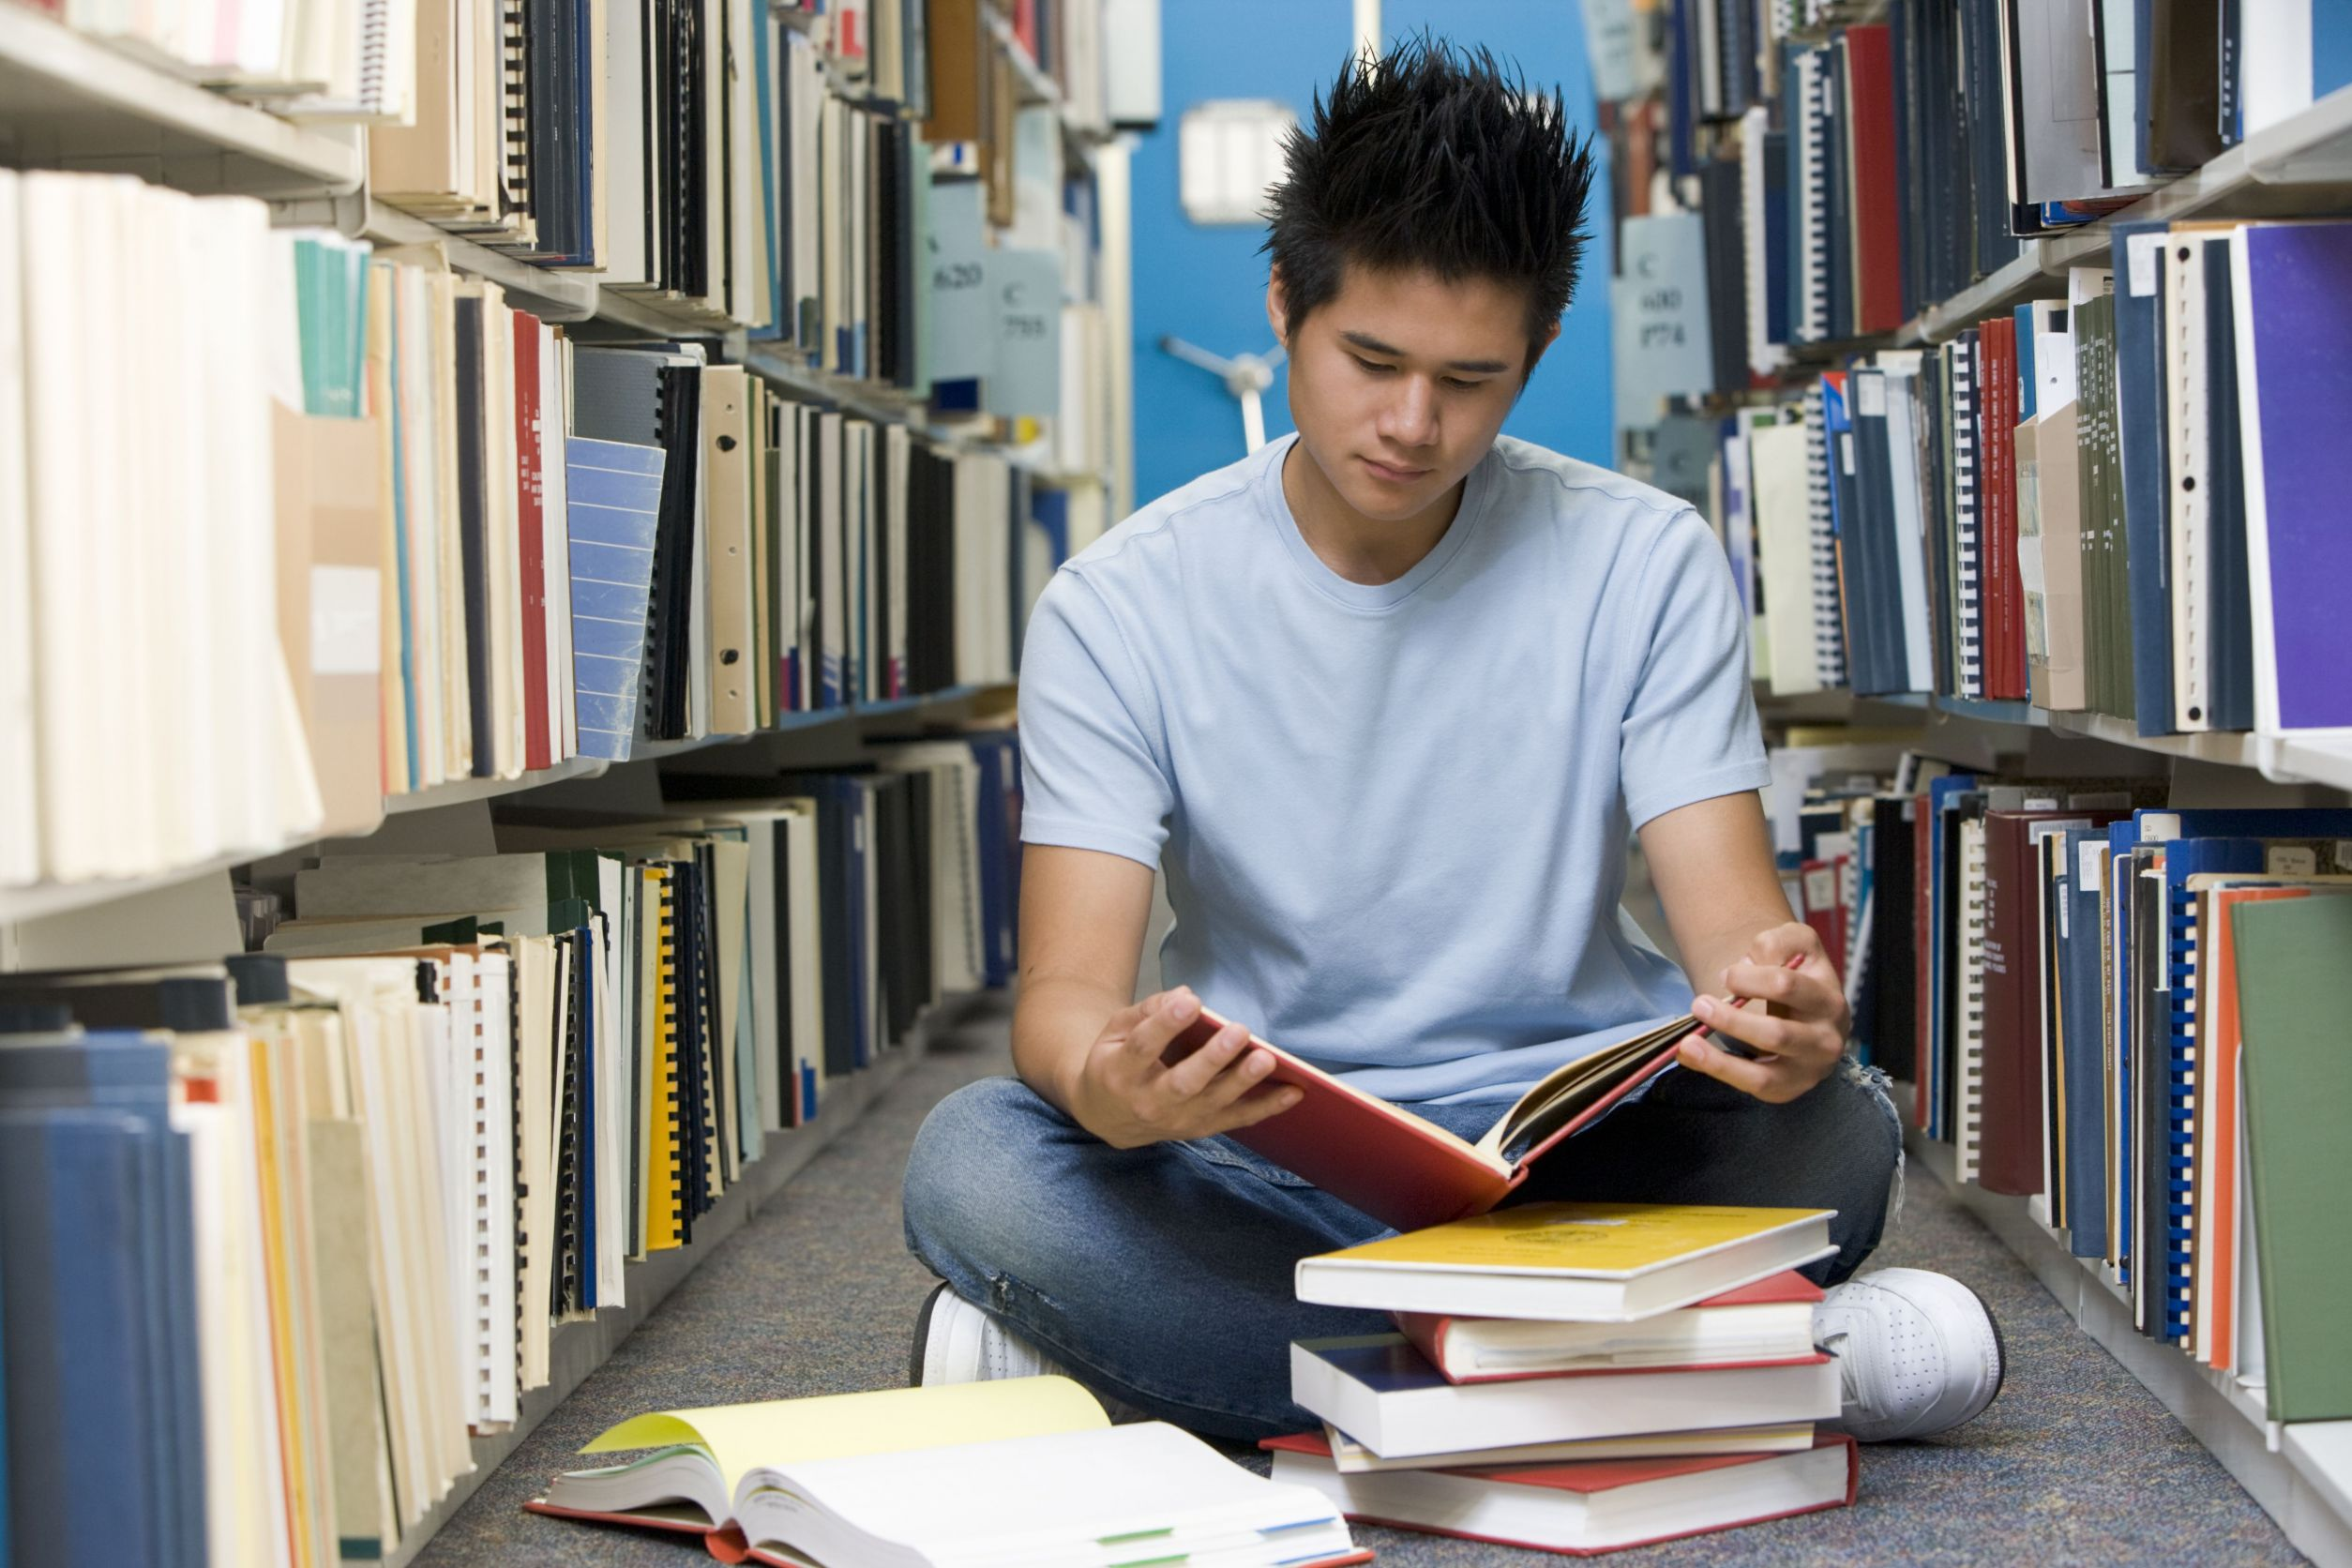 a man studying at a university library